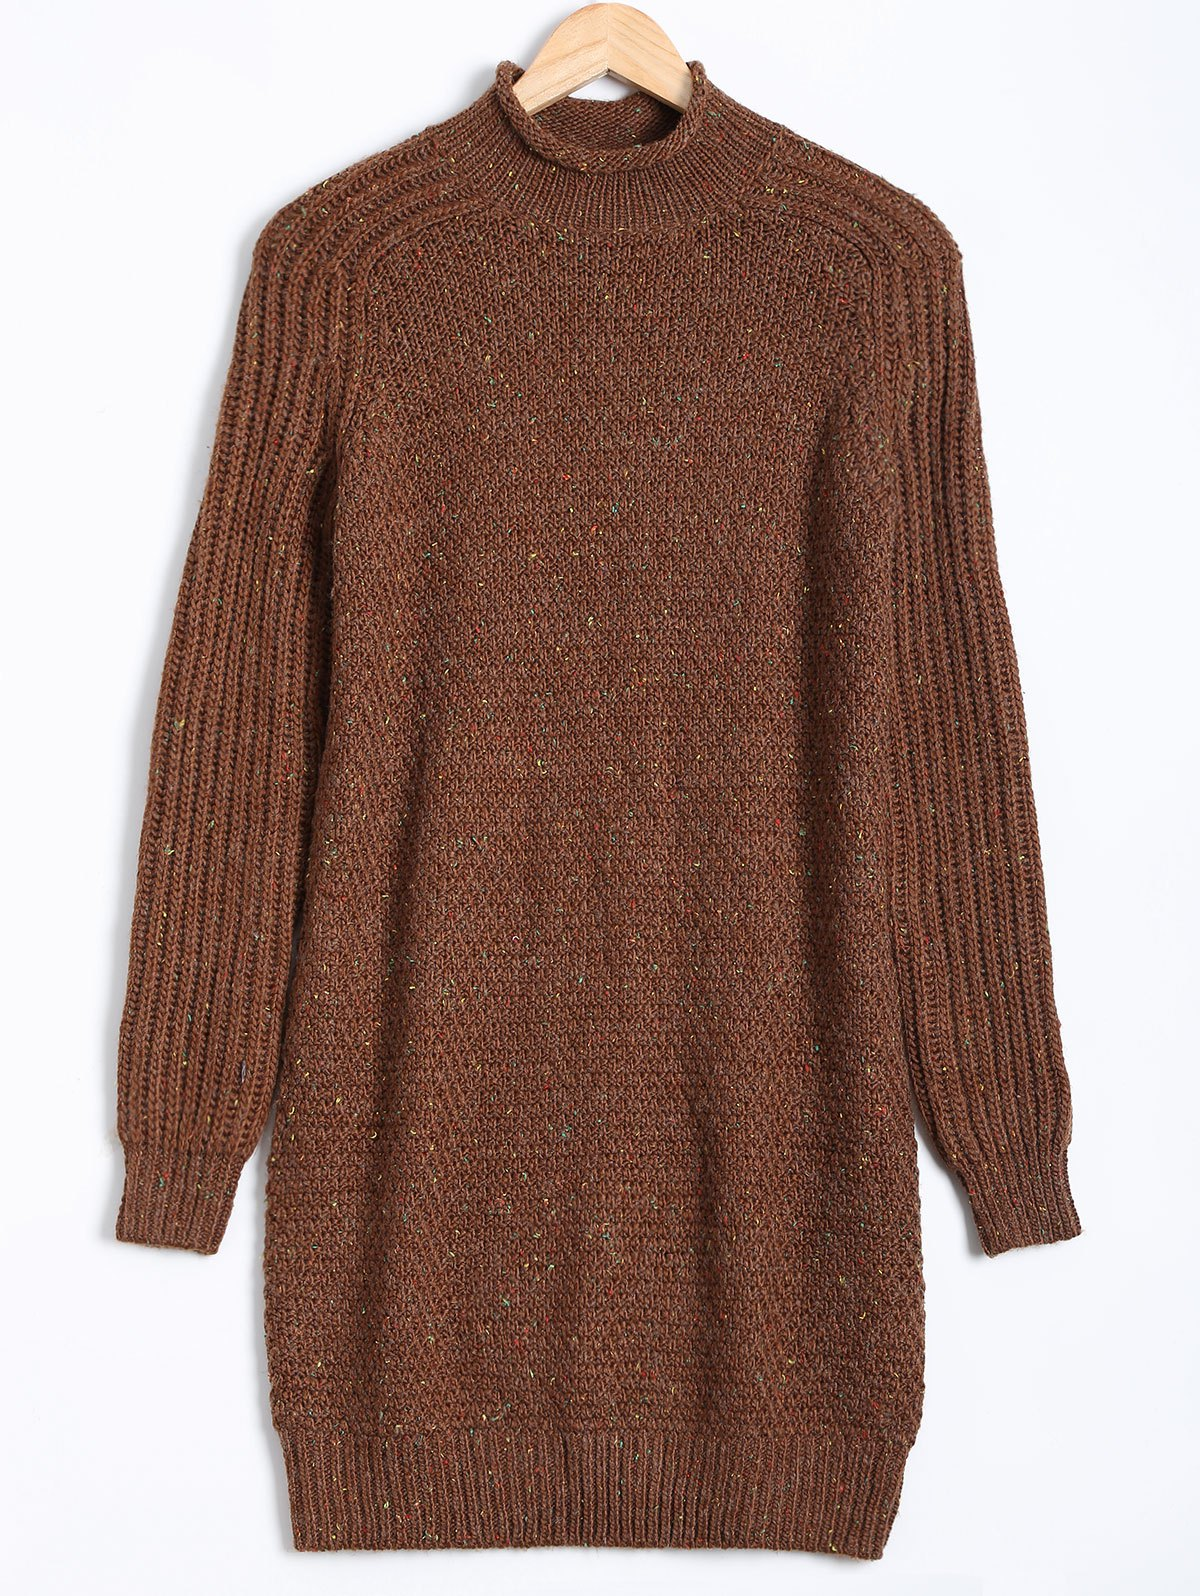 2018 Paint Dot Ribbed Pullover Sweater BROWN XL In Sweaters ...